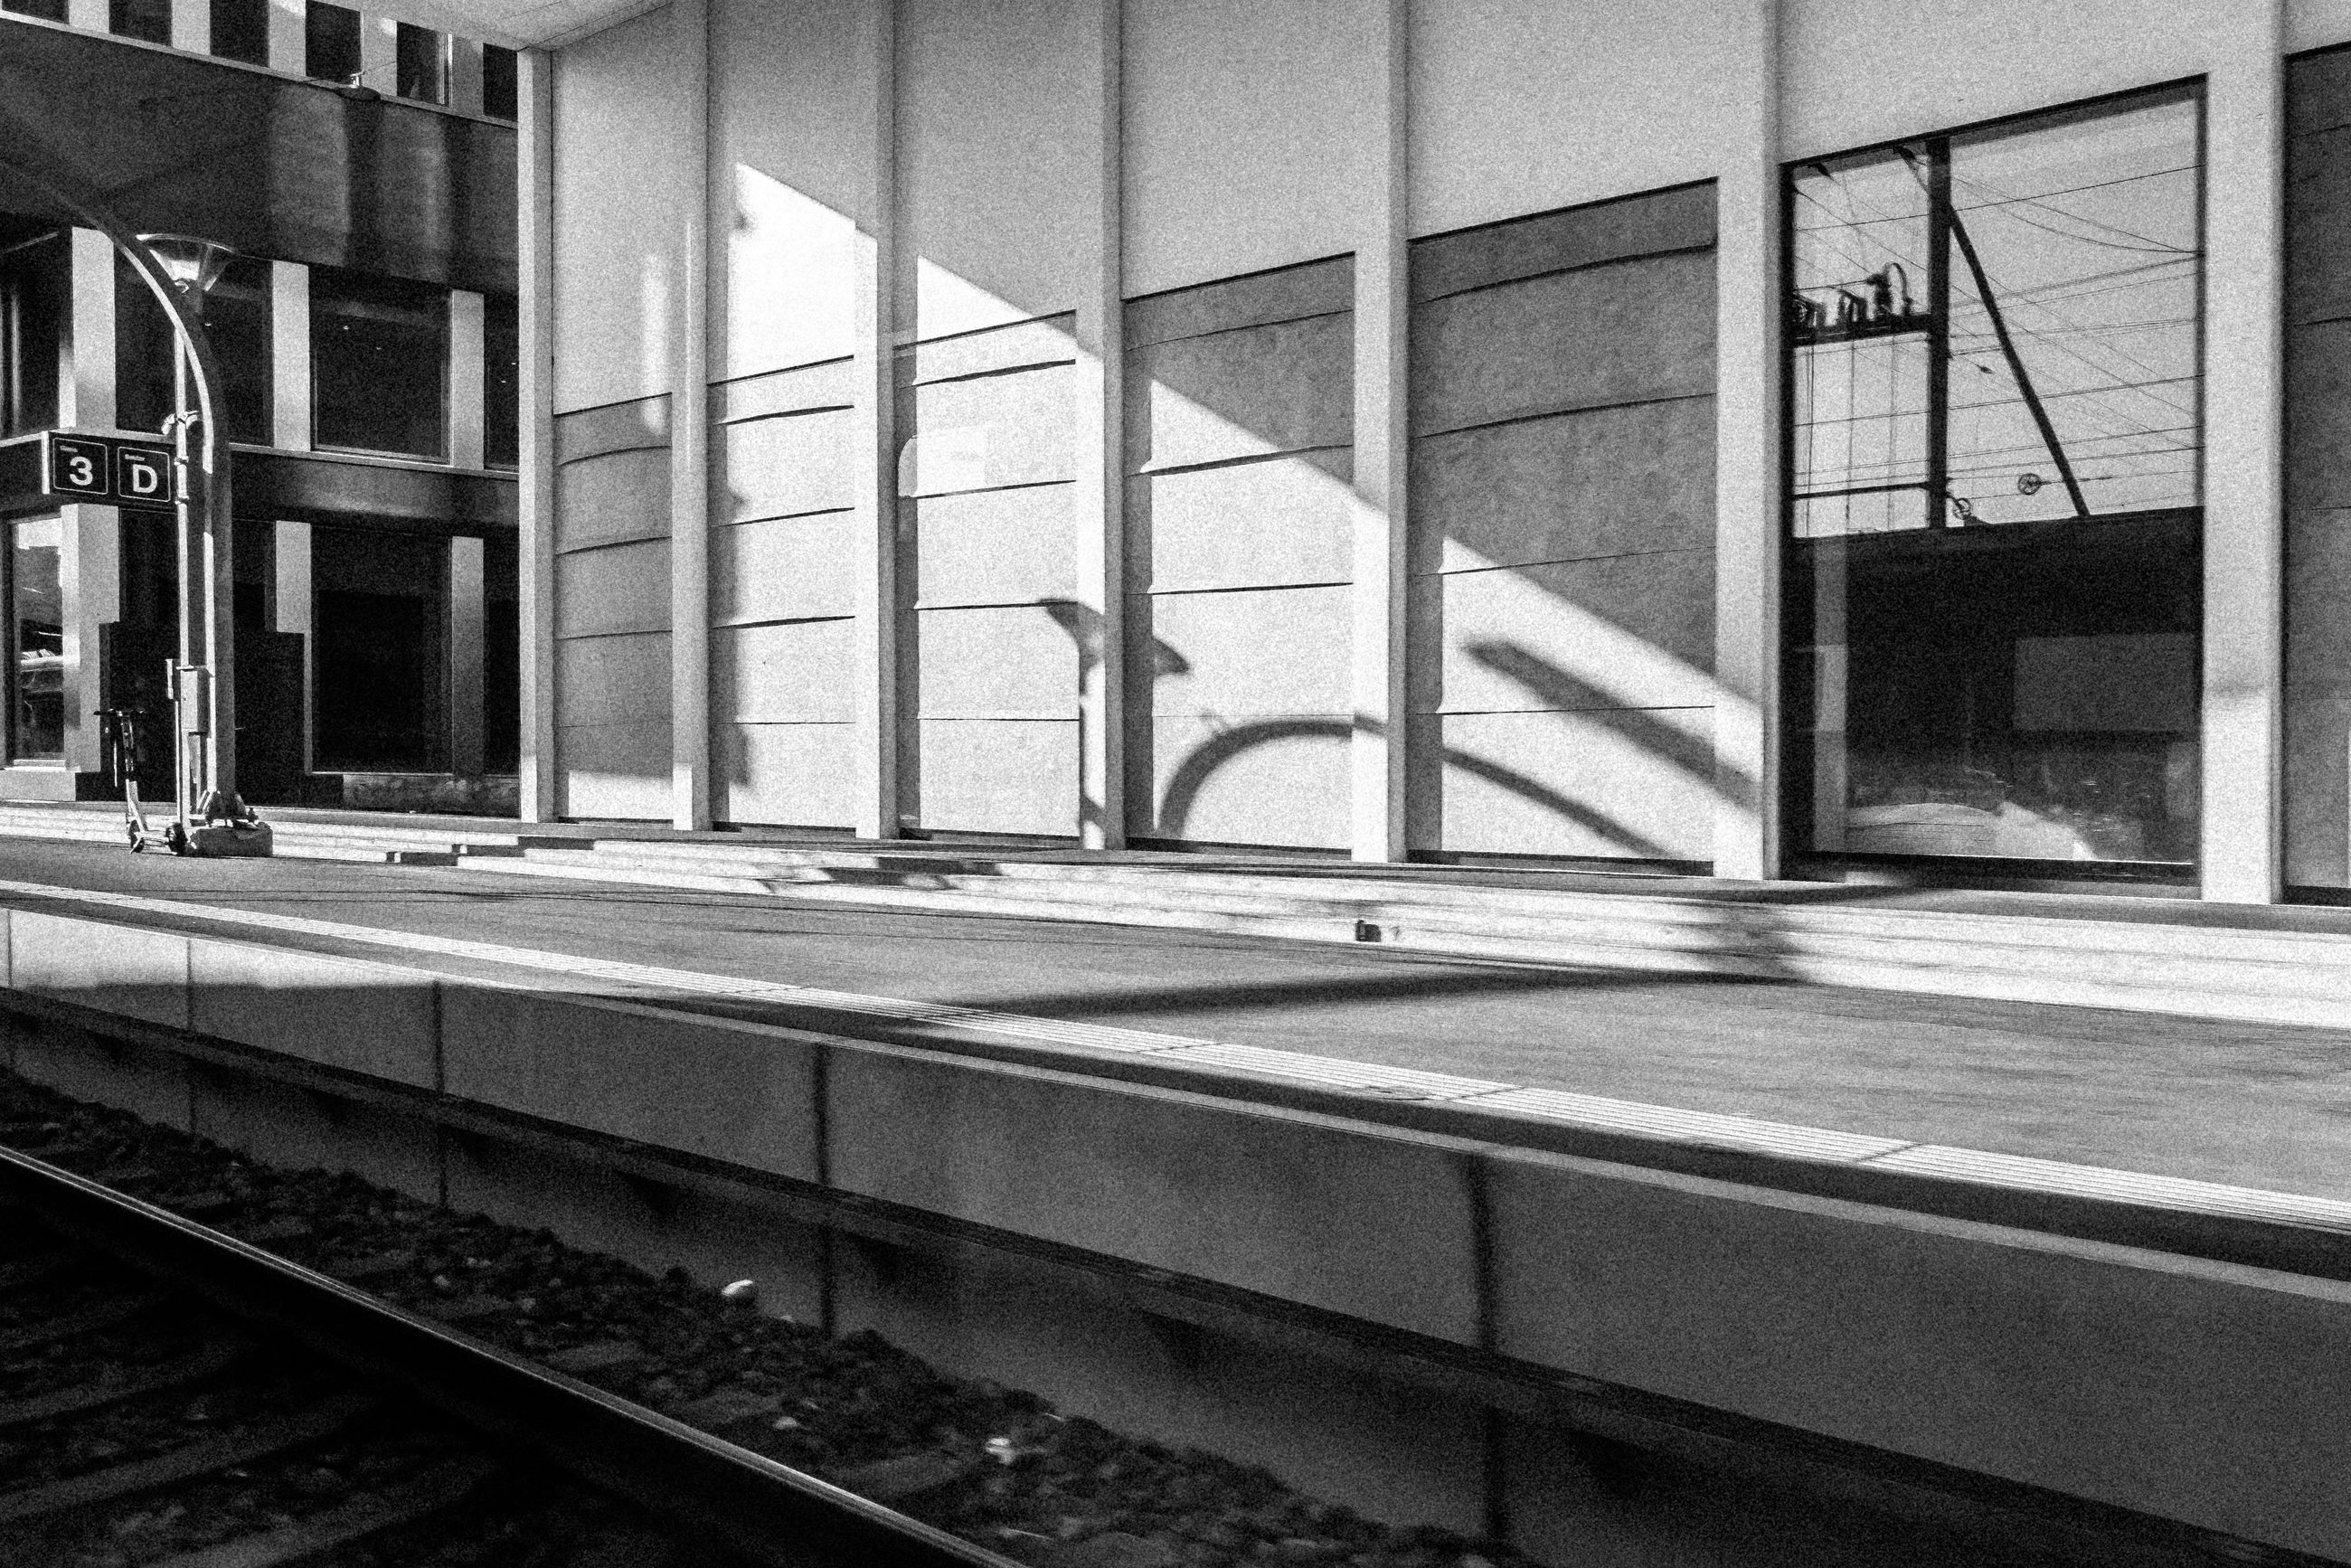 architecture, built structure, track, rail transportation, railroad track, black and white, building exterior, transportation, no people, monochrome, monochrome photography, public transportation, day, transport, railroad station, mode of transportation, railroad station platform, window, building, outdoors